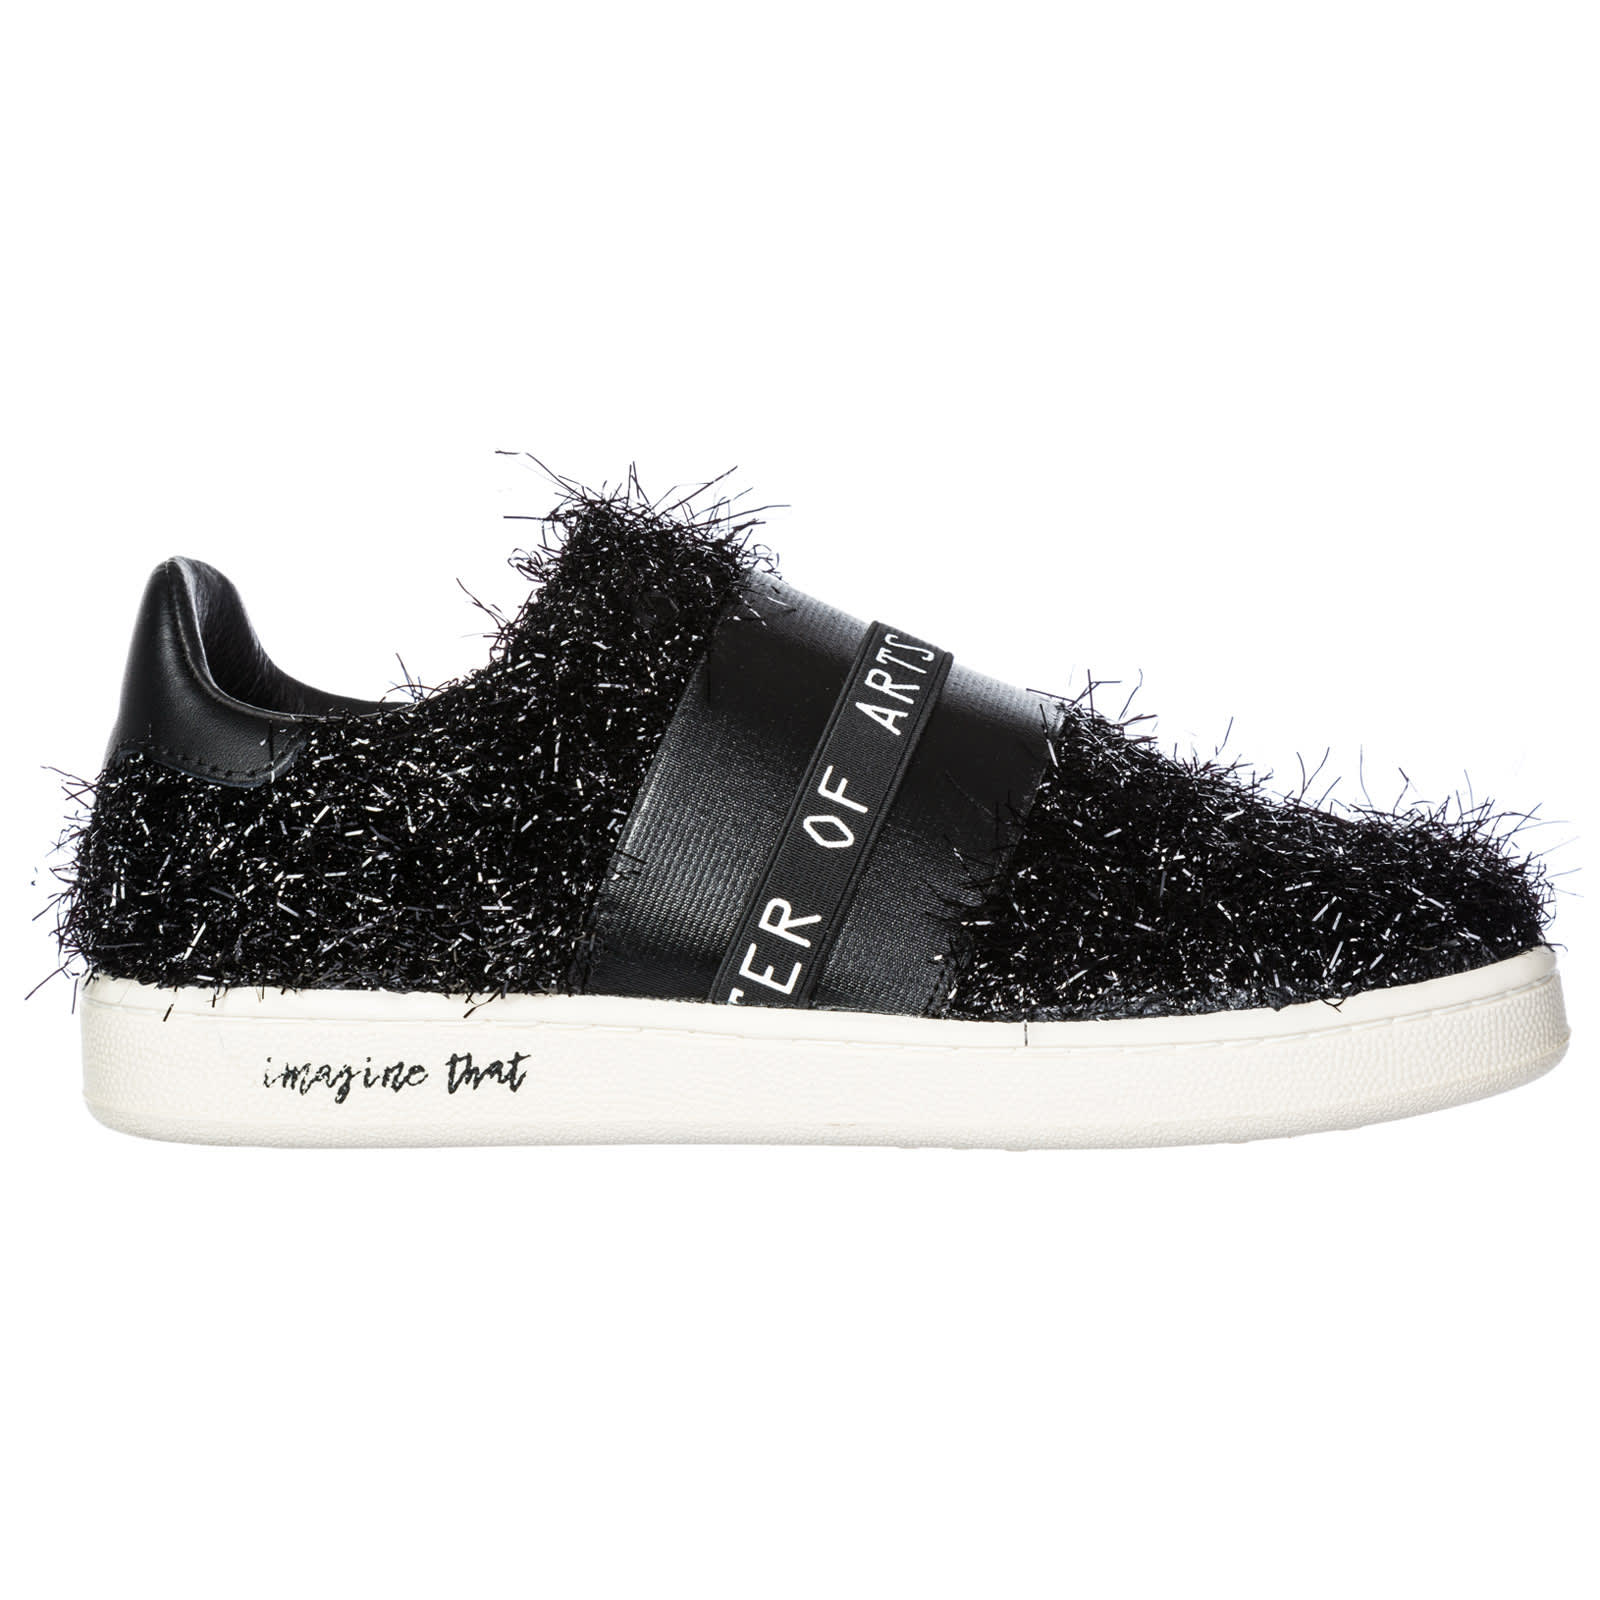 M.O.A. master of arts Moa Master Of Arts Gallery Furry Slip-on Shoes